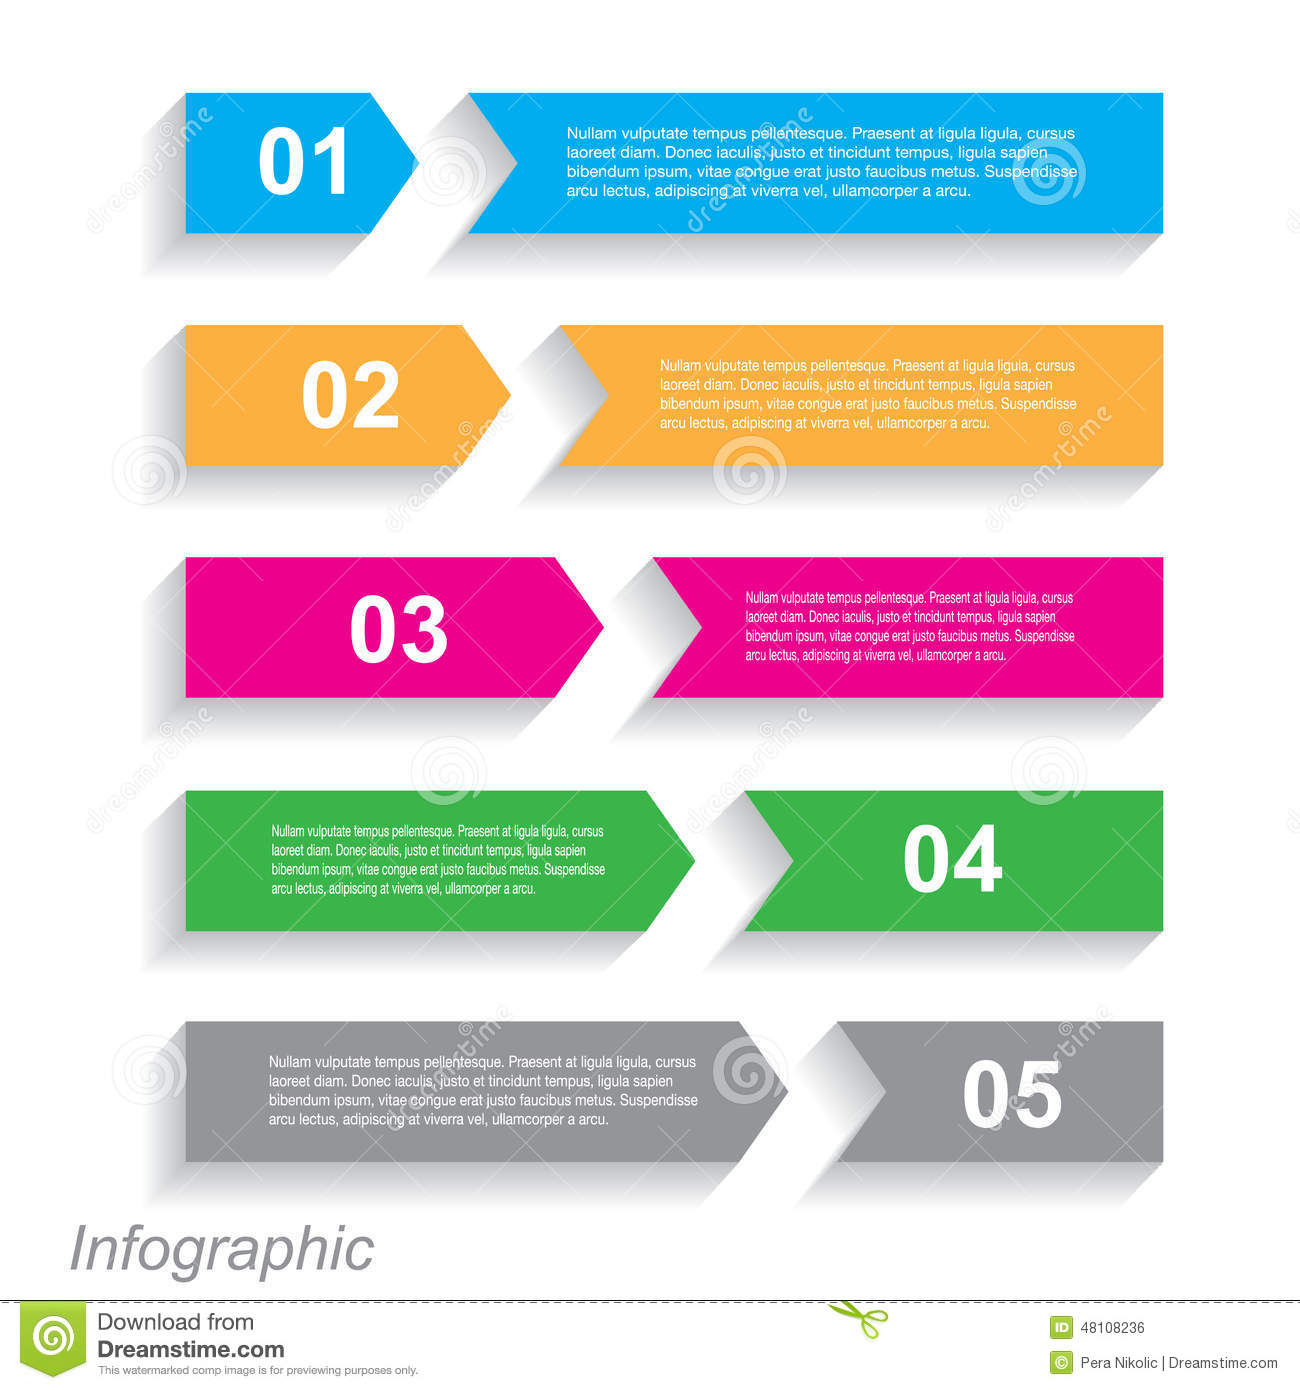 Infographic Design For Product Ranking Stock Vector - Image: 48108236